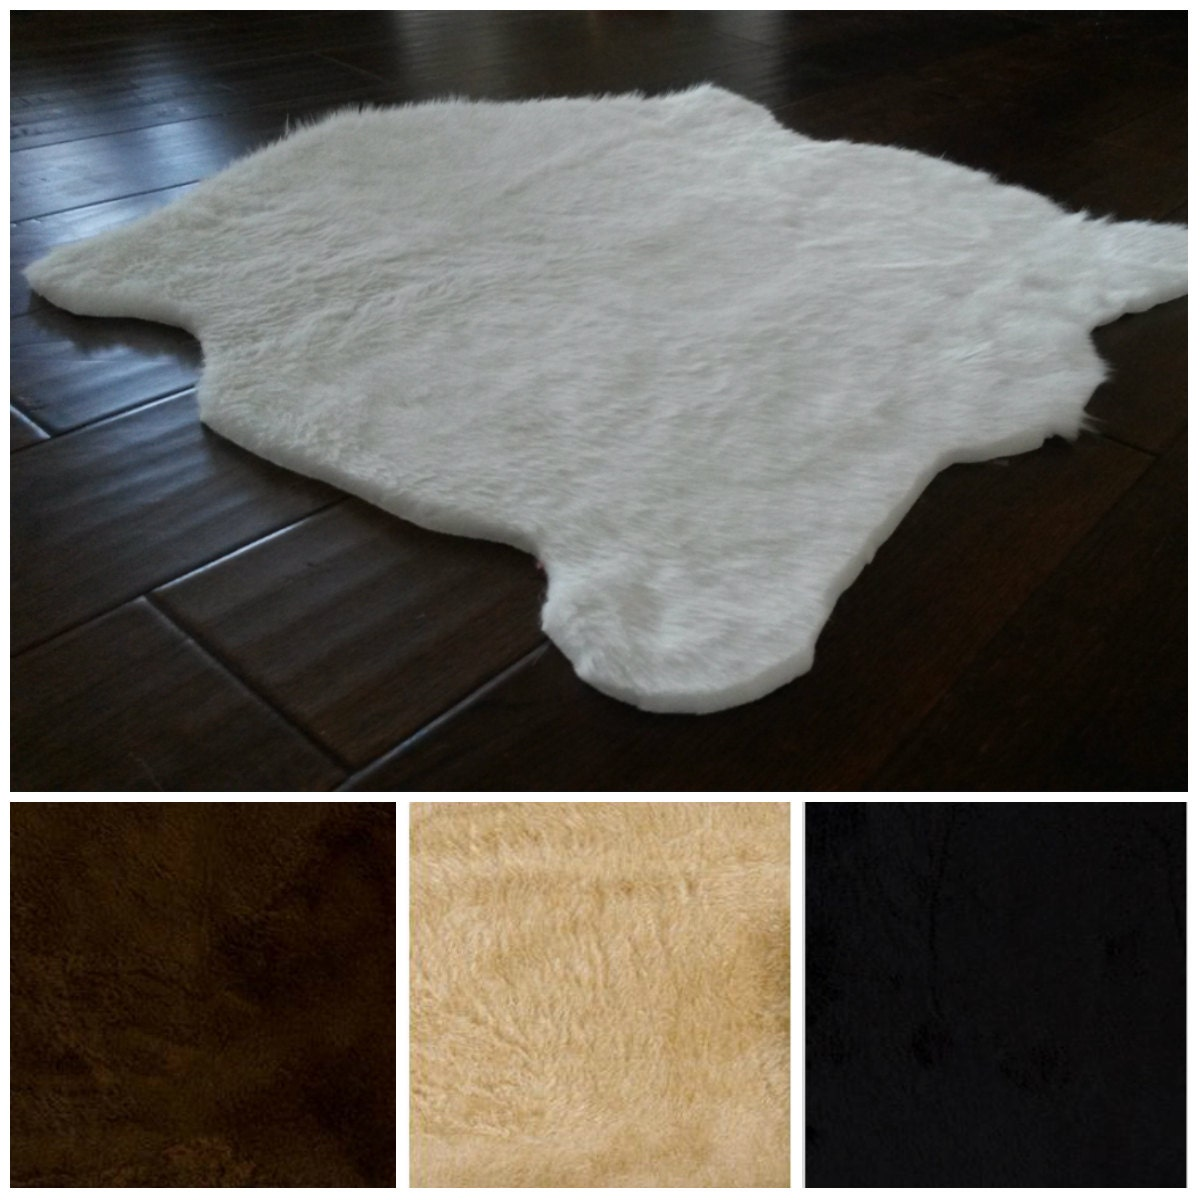 White Faux Fur Rug 5' X 7'/ 3' X 5'/ Many